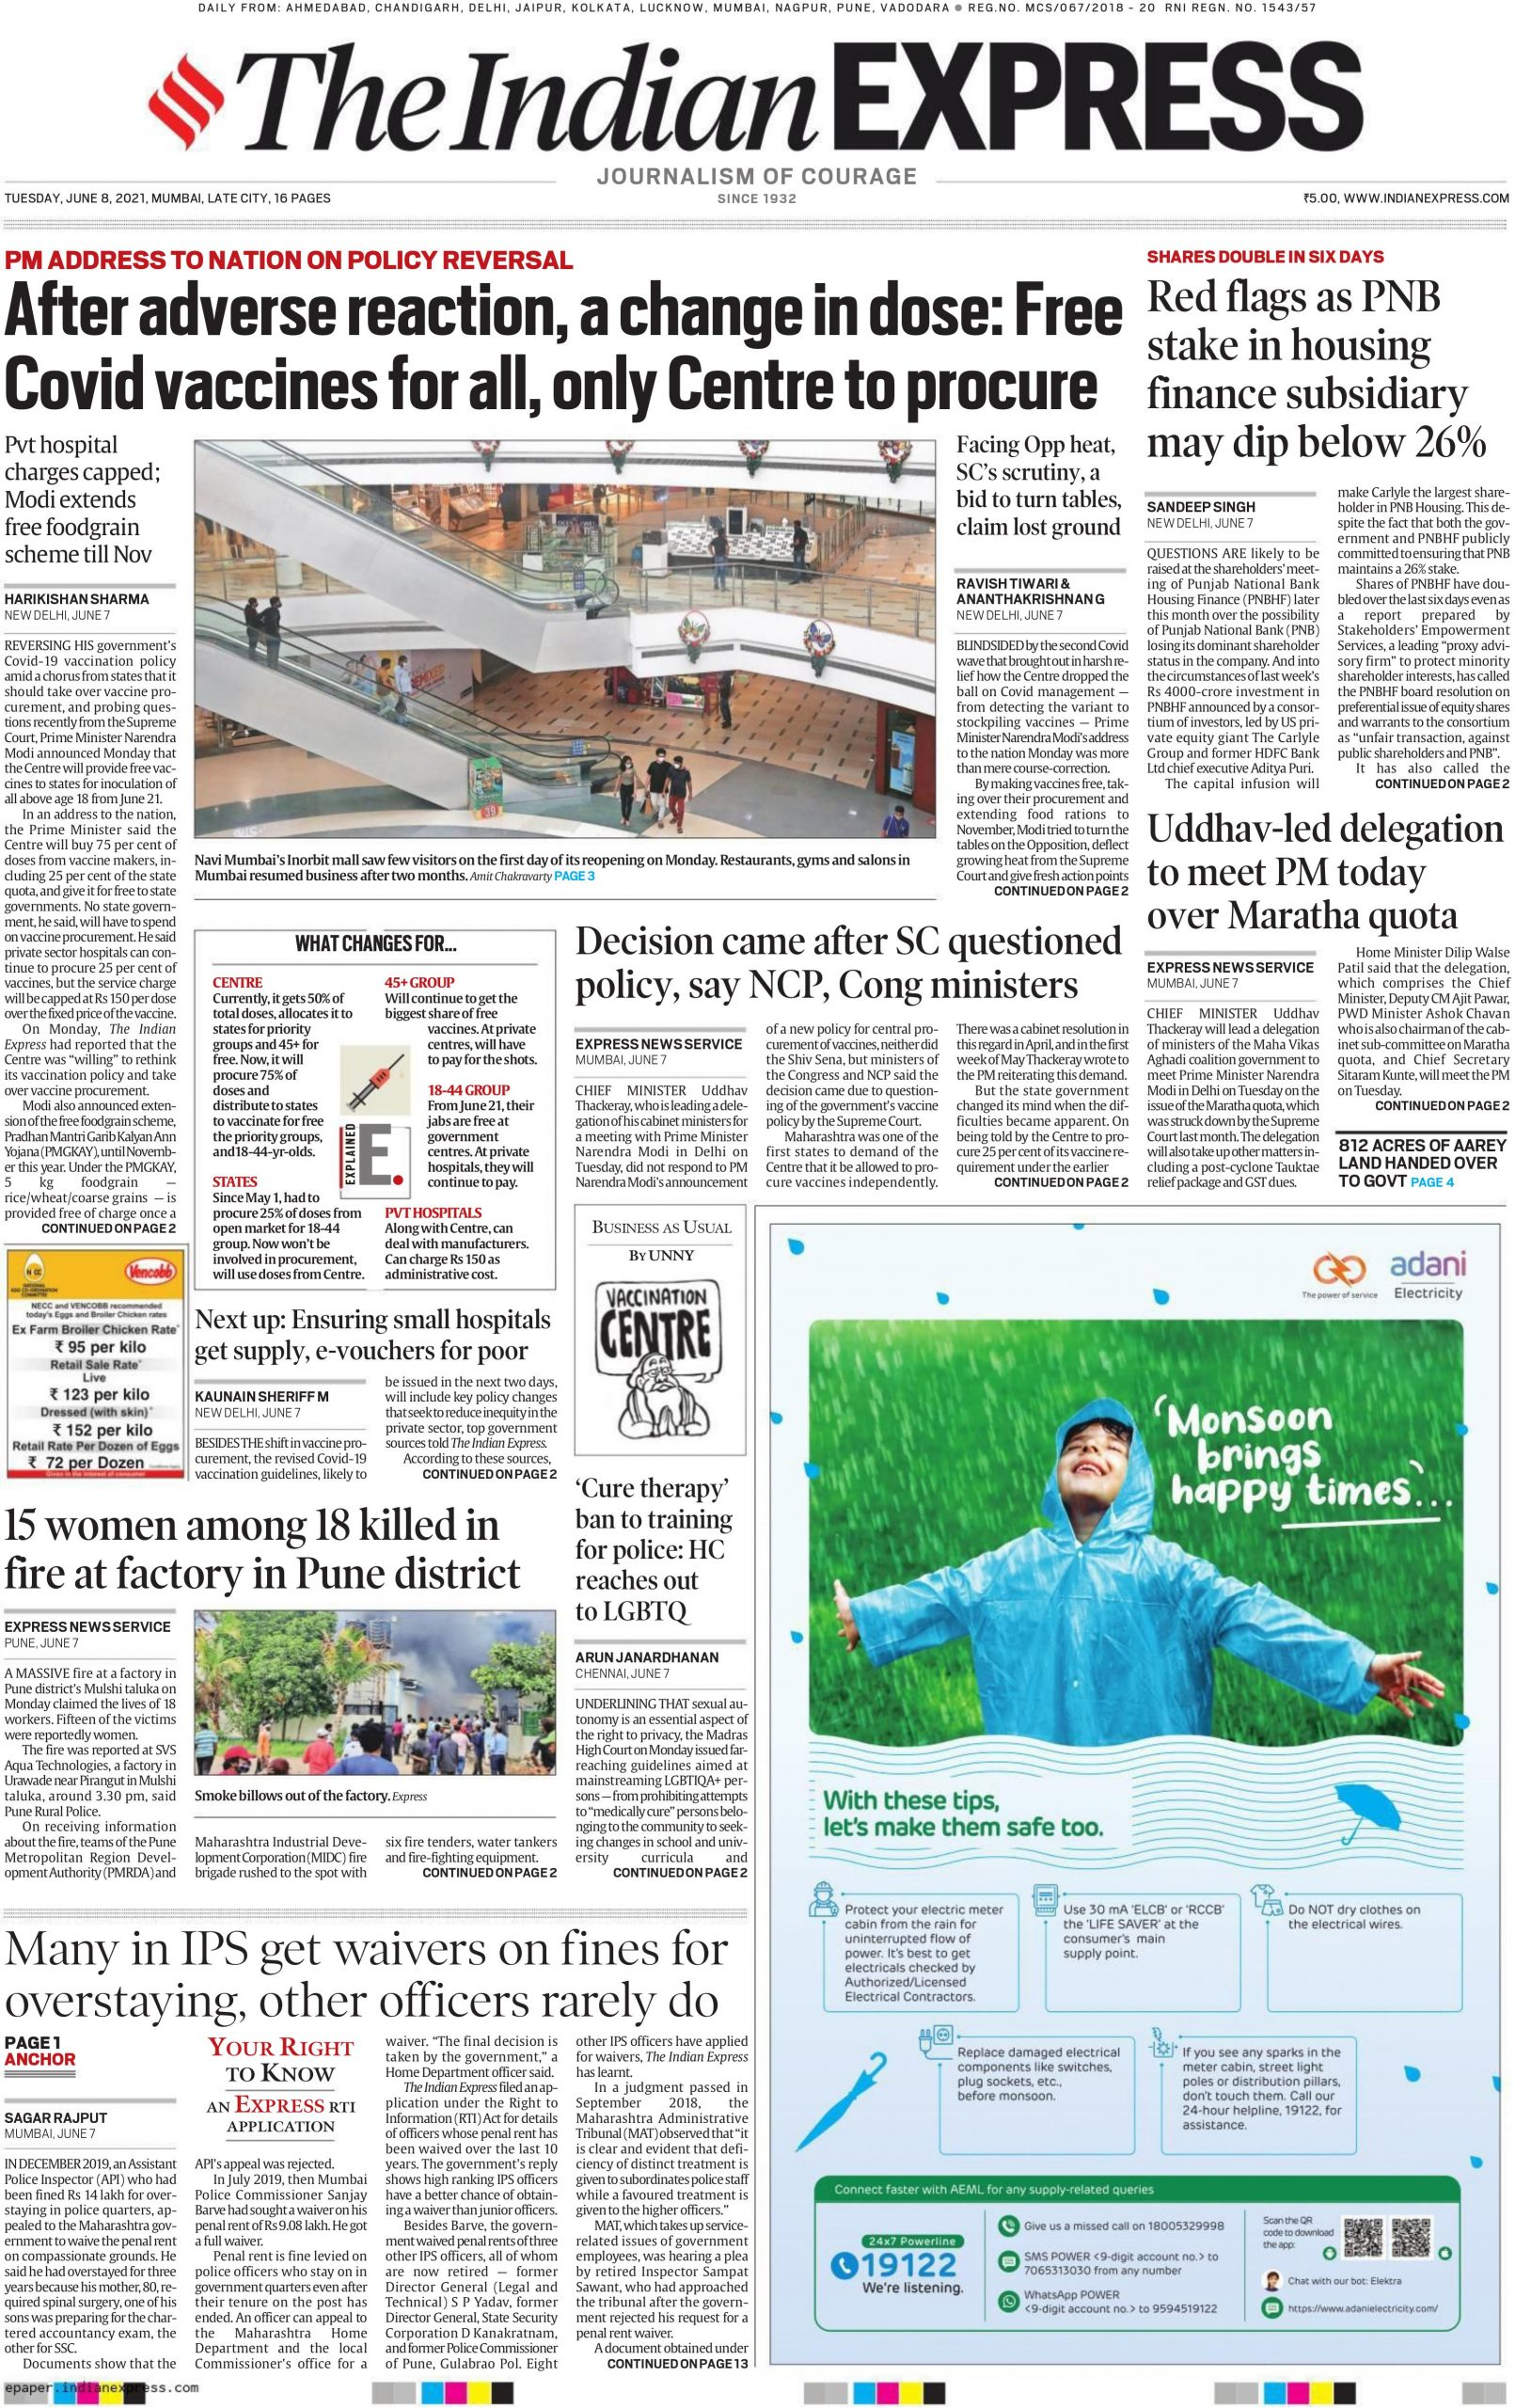 The Indian Express 8th June 2021